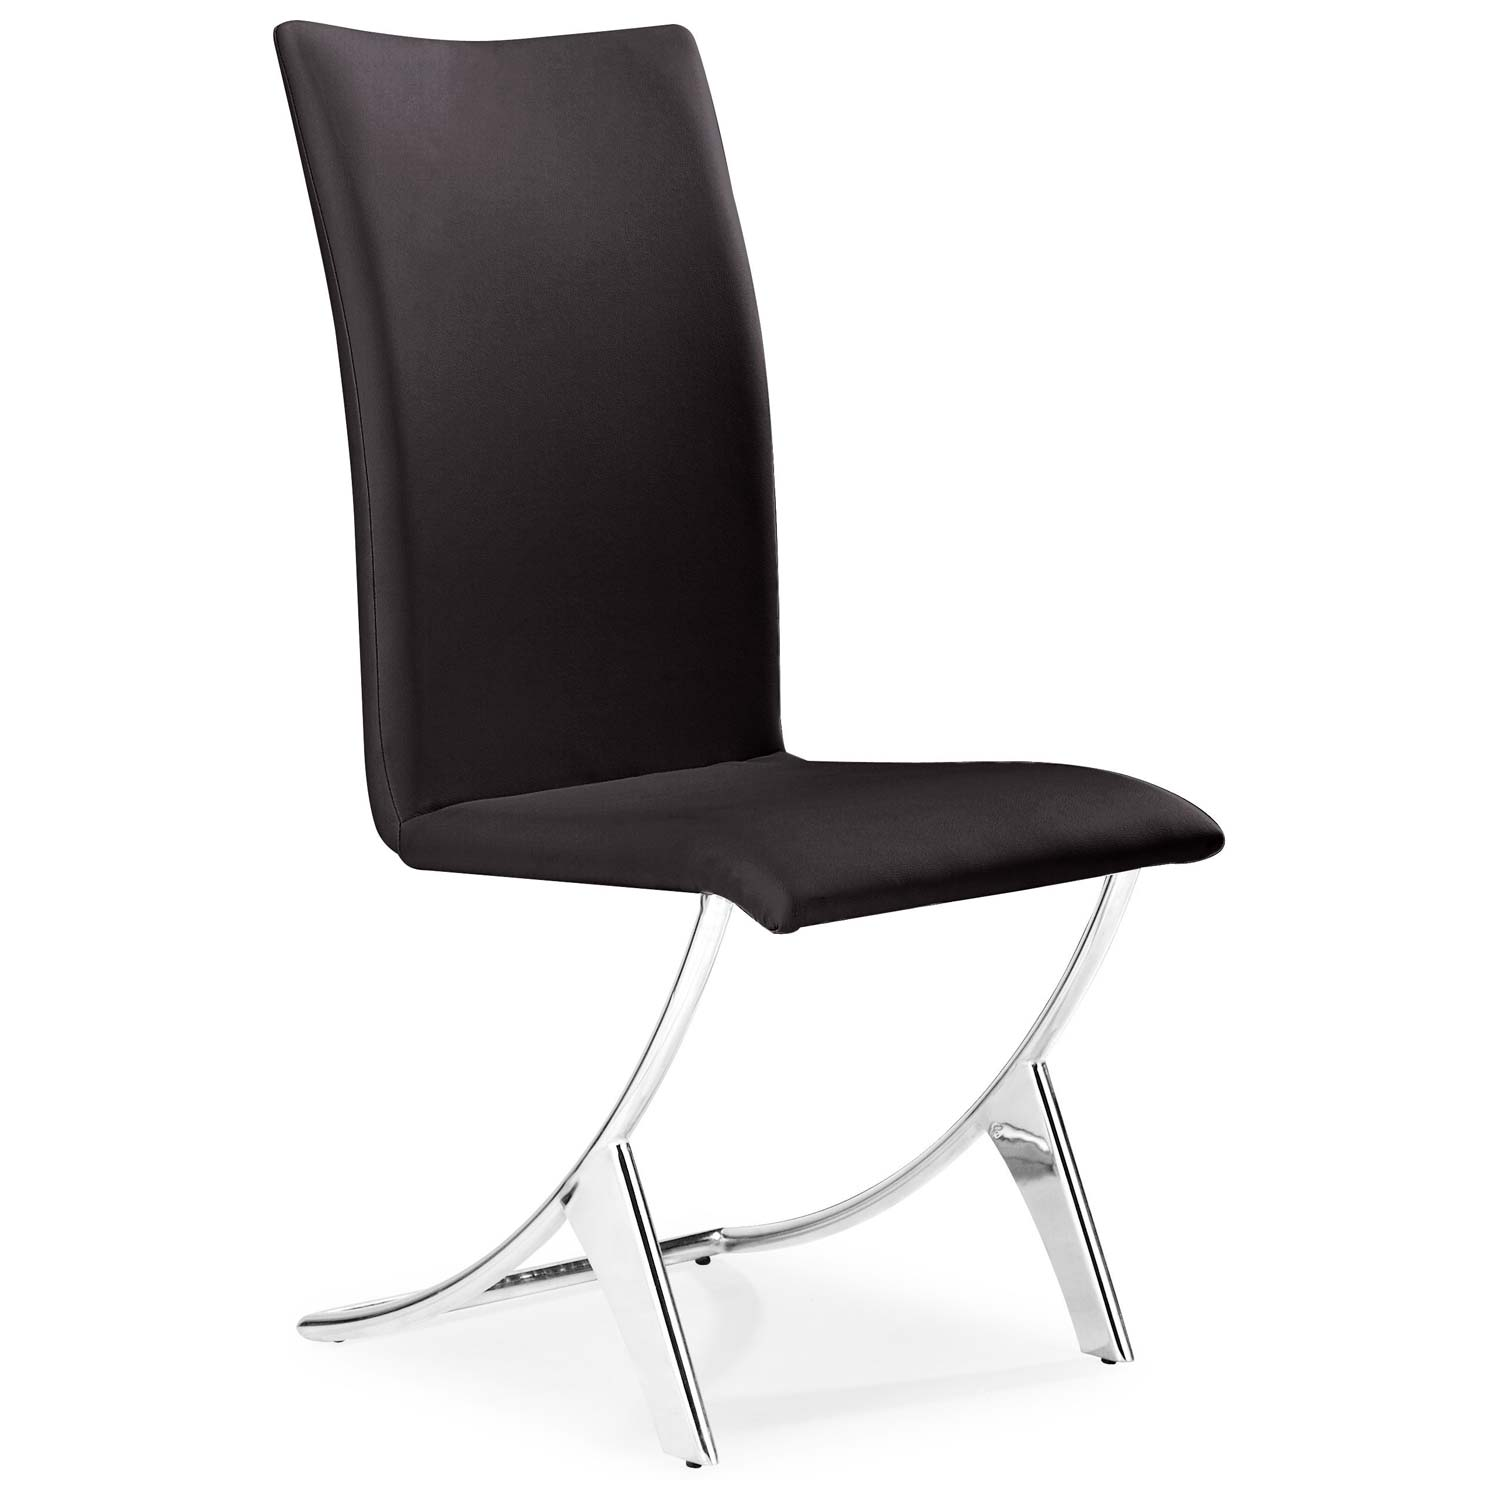 Delfi Dining Chair in Espresso